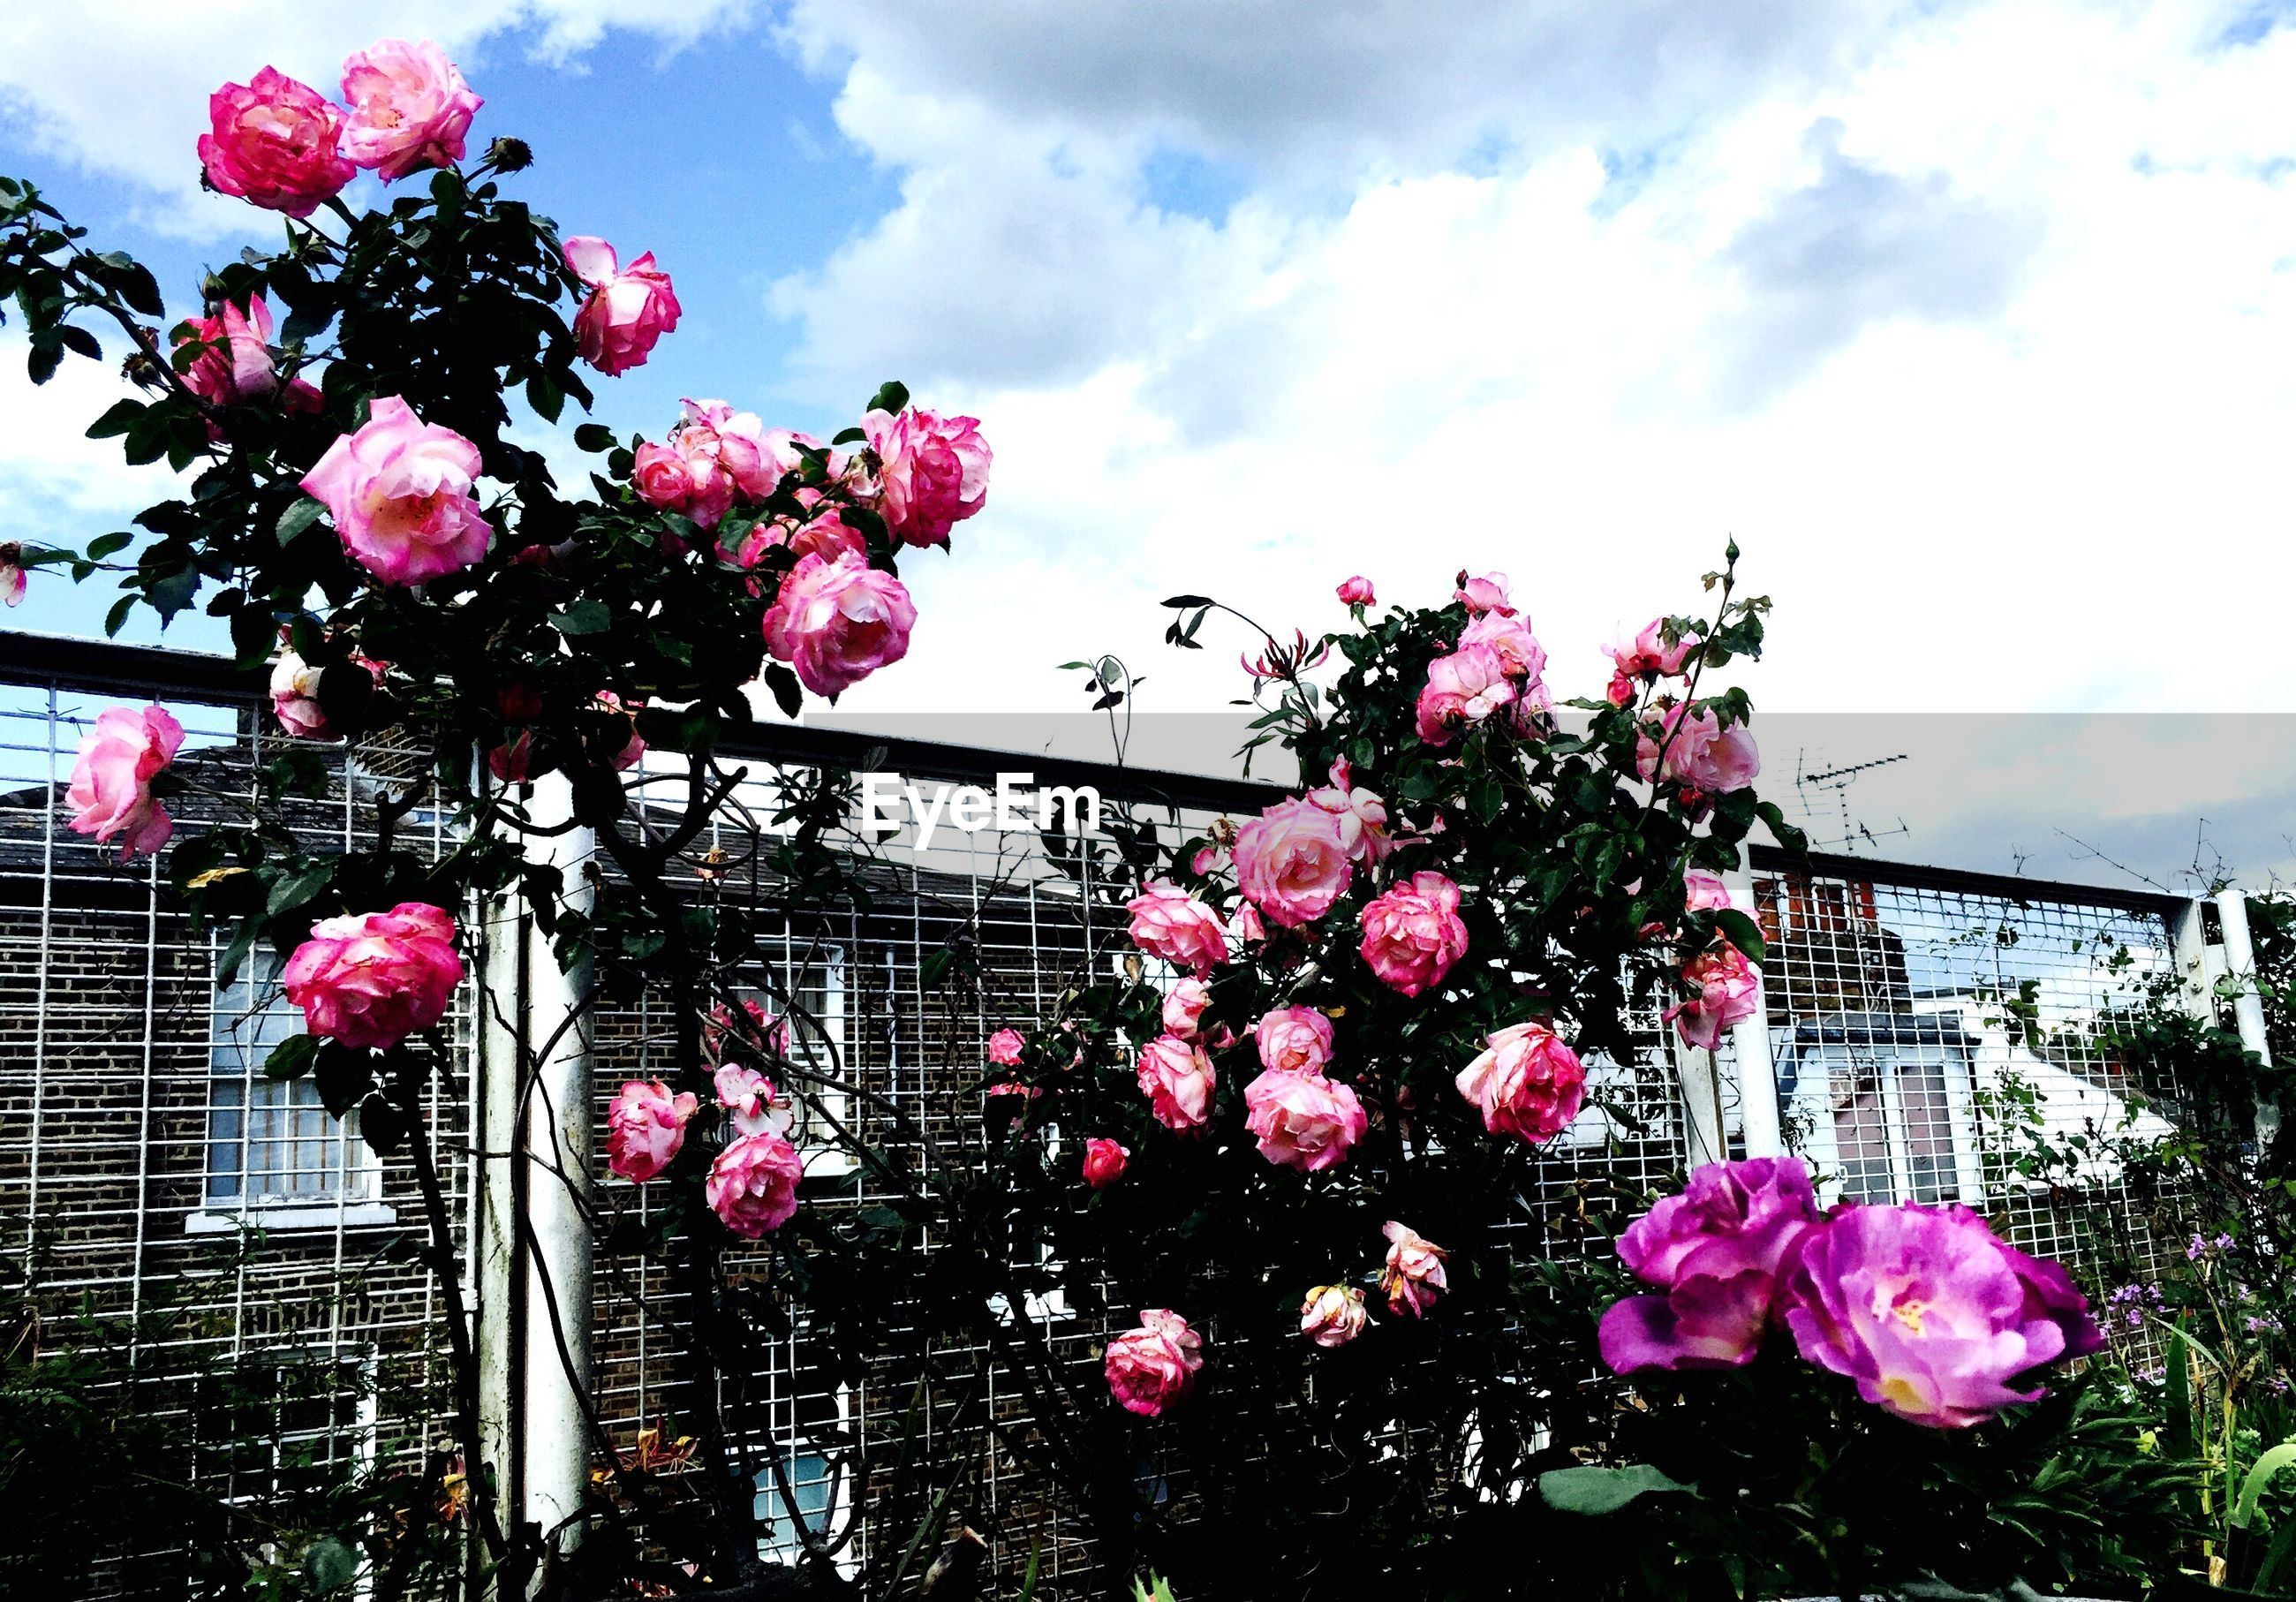 Low angle view of roses growing on plant by fence against cloudy sky